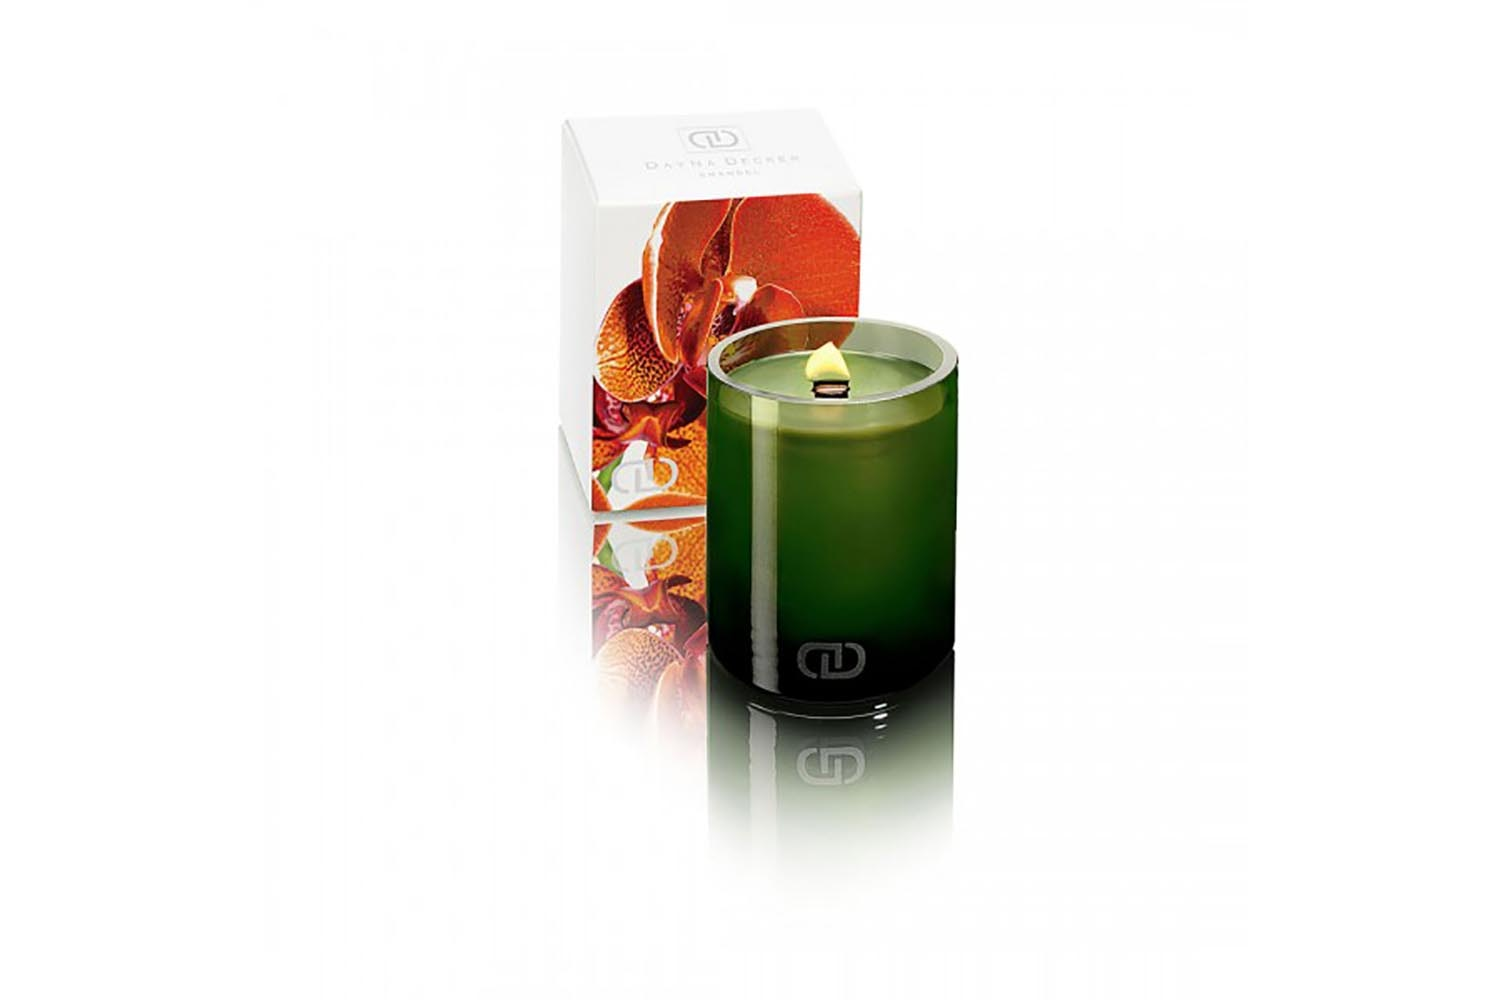 Clementine Botanika Candle 6oz by DayNa Decker